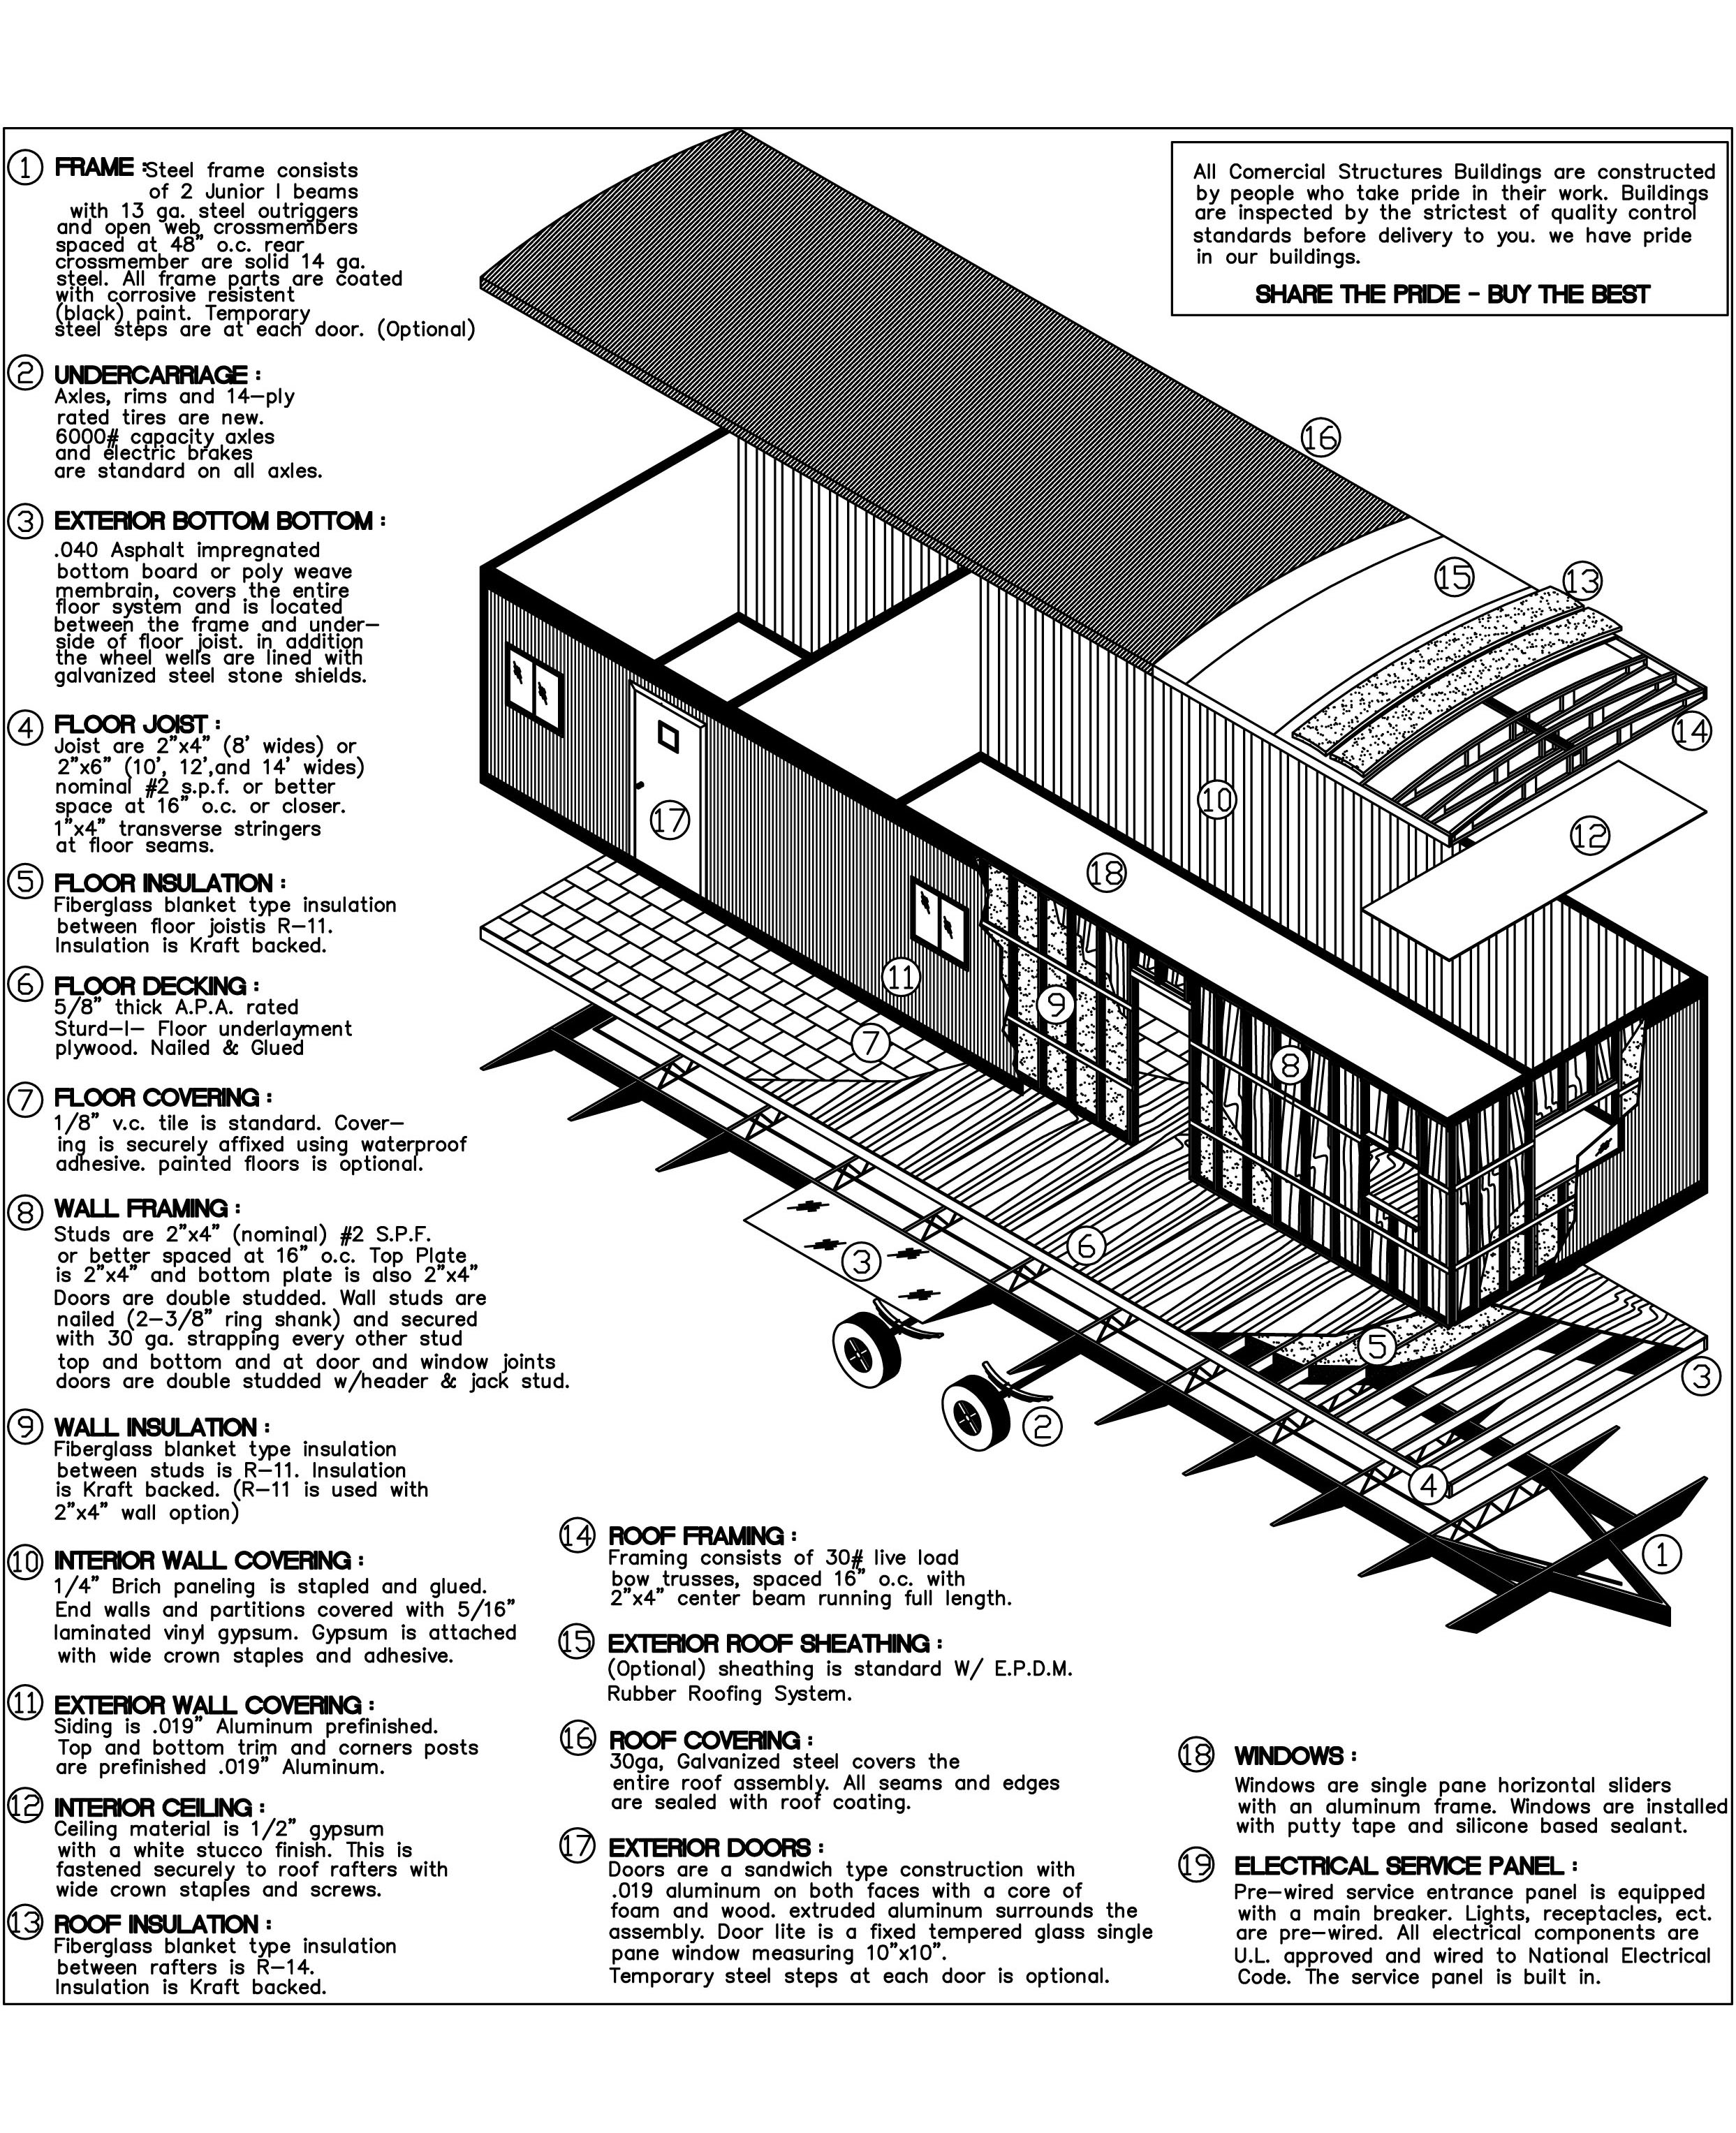 Modular office spec drawings with labeled diagram